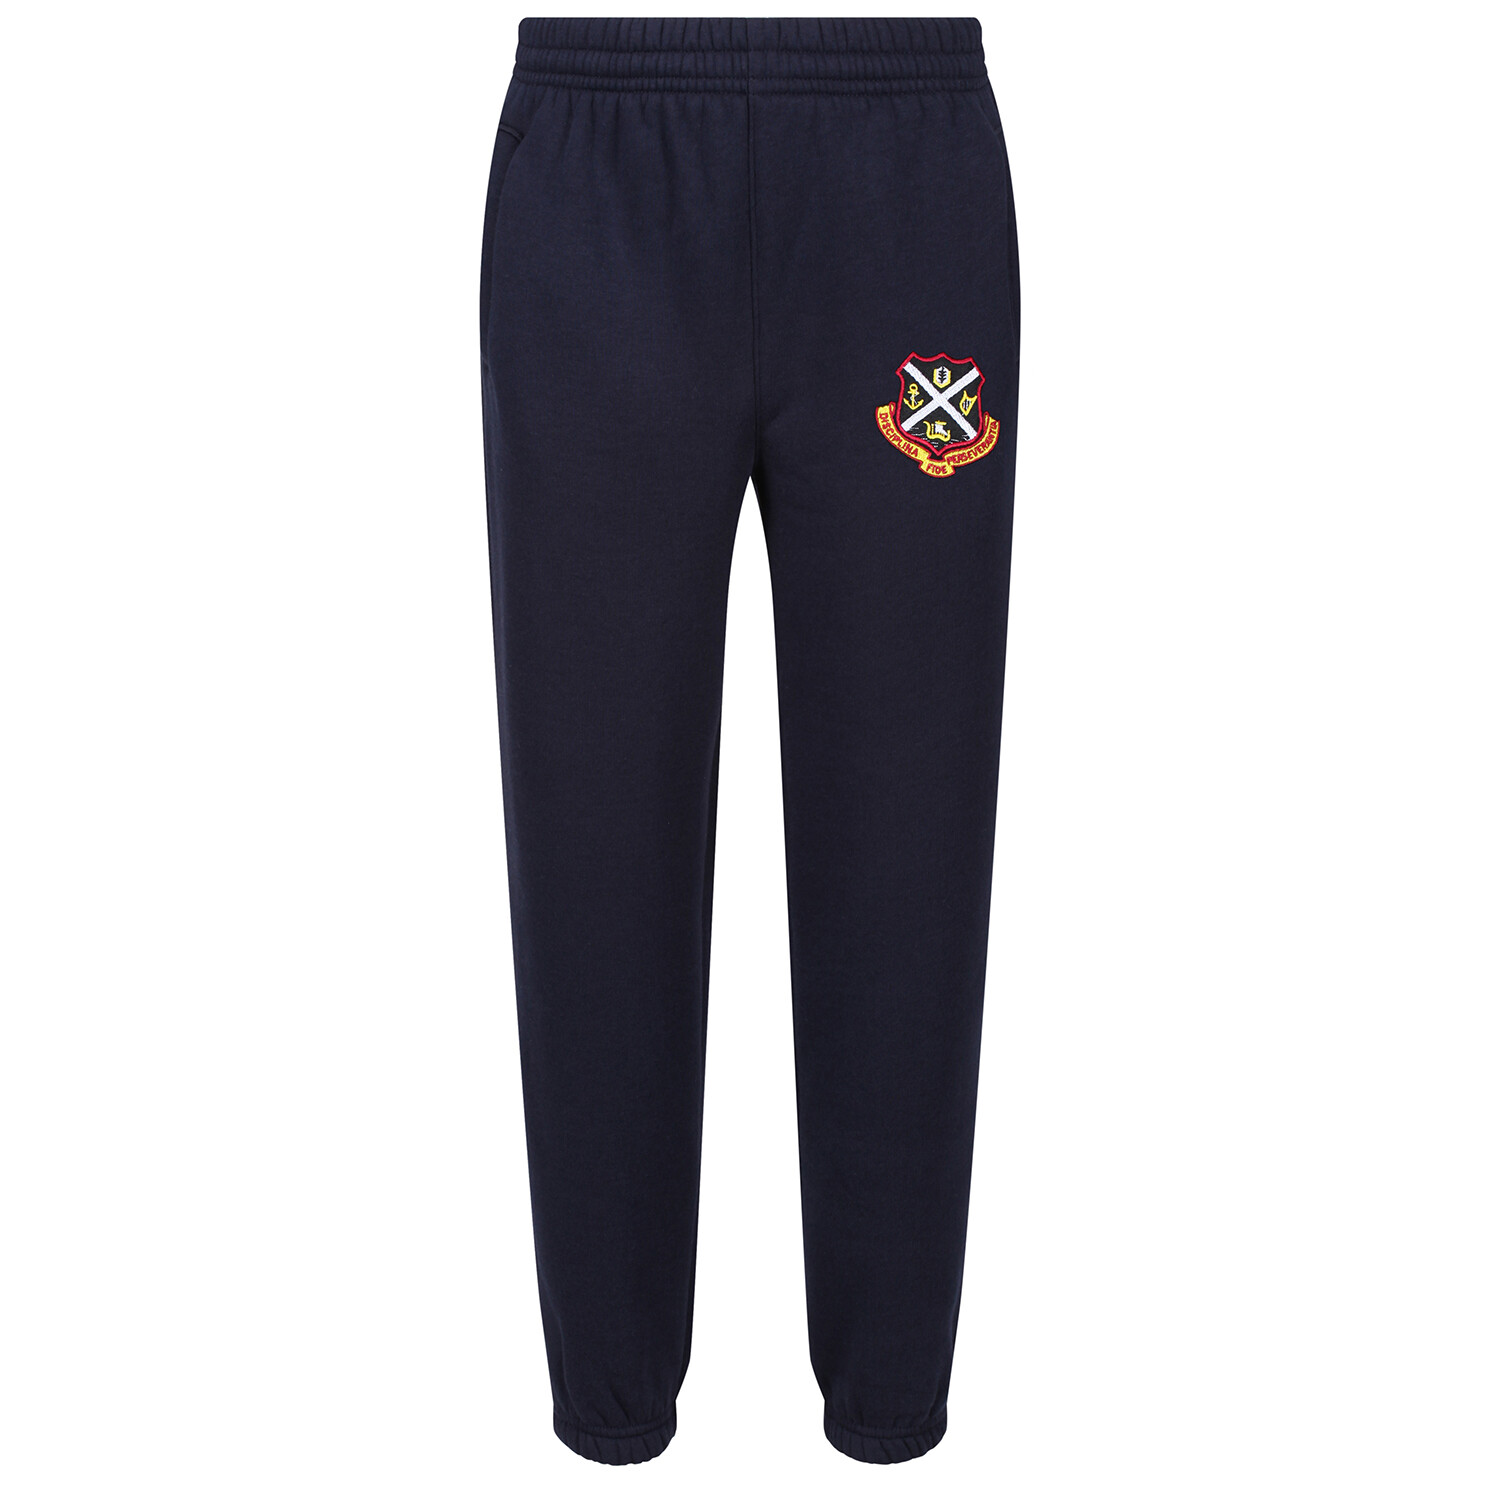 Dunoon Jog Pant for PE & Outdoor Activity